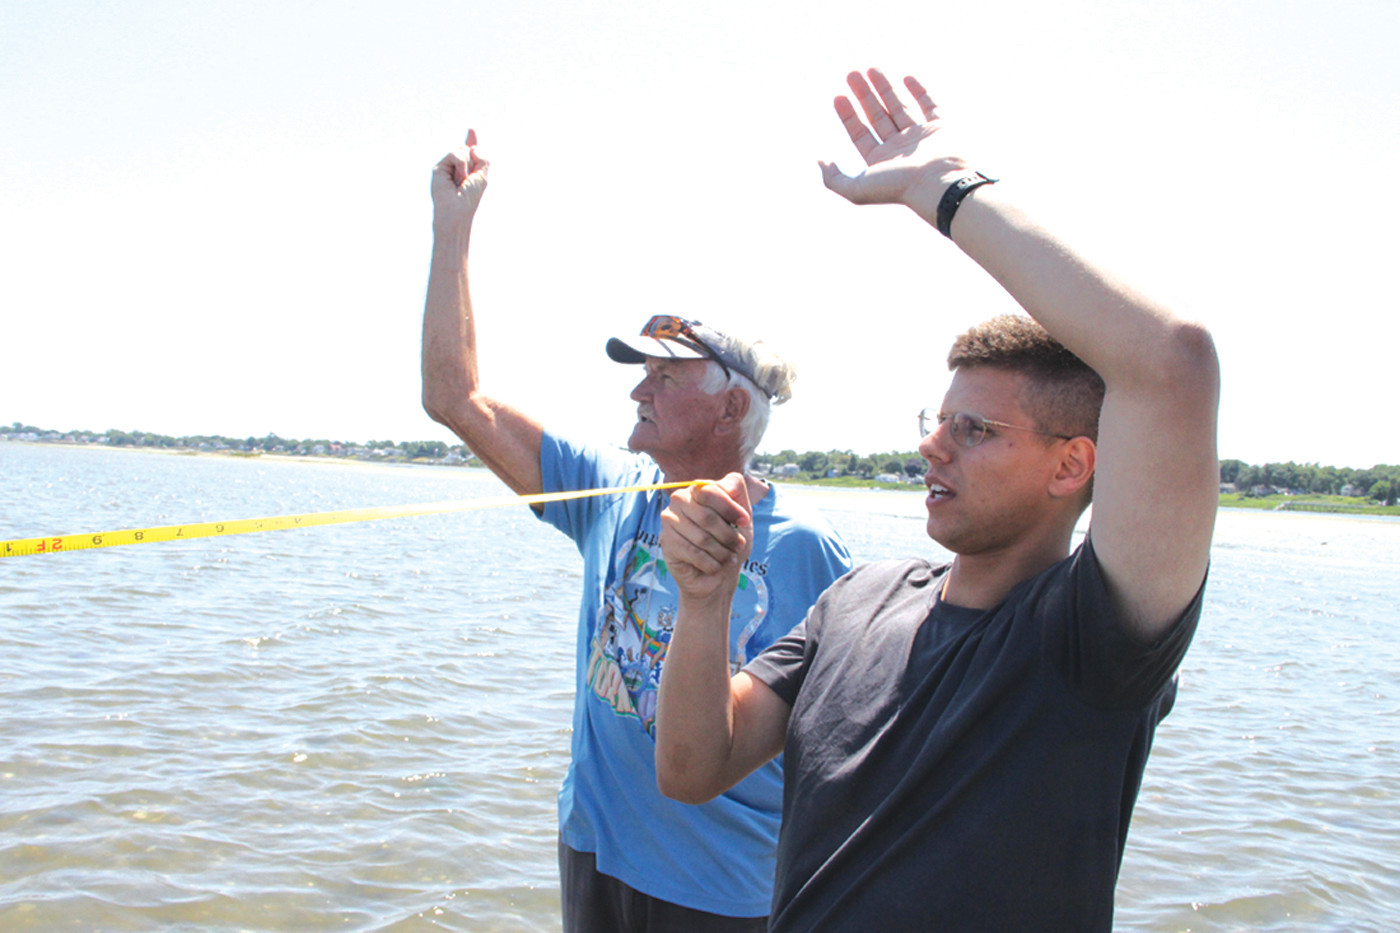 TO THE EAST: Ray Turbitt and Shane Bonin signal to team members to head southeast as they mark off a quadrant.